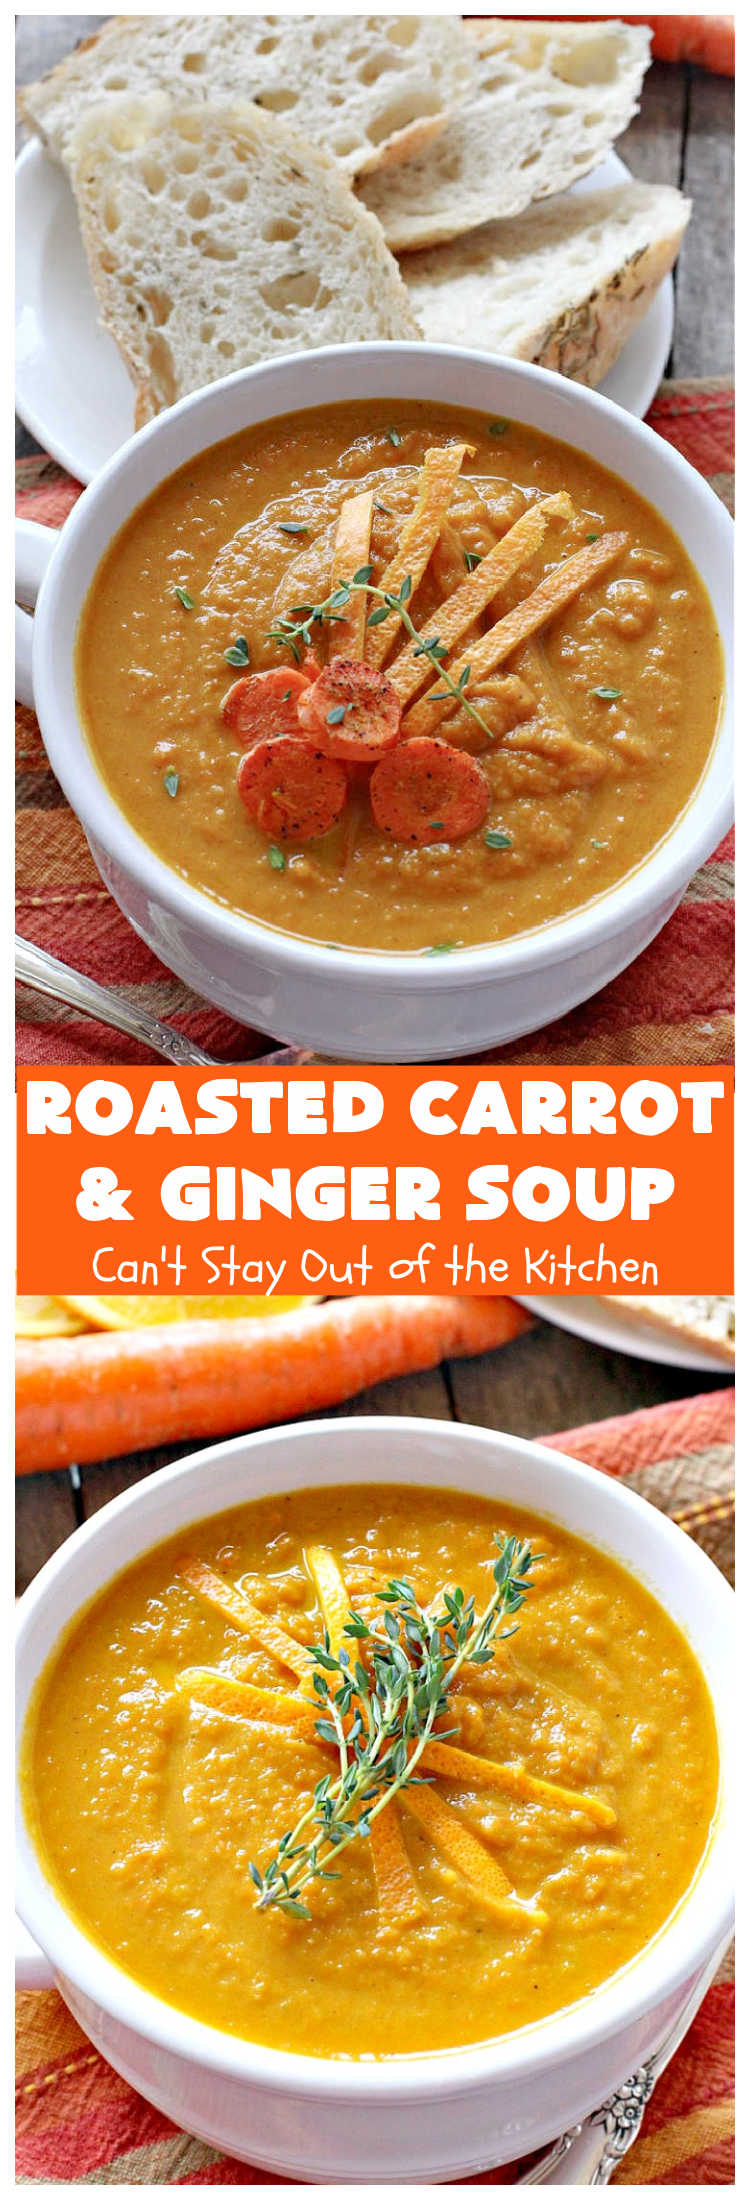 Roasted Carrot and Ginger Soup | Can't Stay Out of the Kitchen | this lovely #soup is creamy & delicious & perfect for cold, winter nights when you want comfort food. It's also #GlutenFree #vegan, #CleanEating & #LowCalorie. #carrots #ginger #leeks #MeatlessMondays #RoastedCarrotAndGingerSoup #CarrotAndGingerSoup